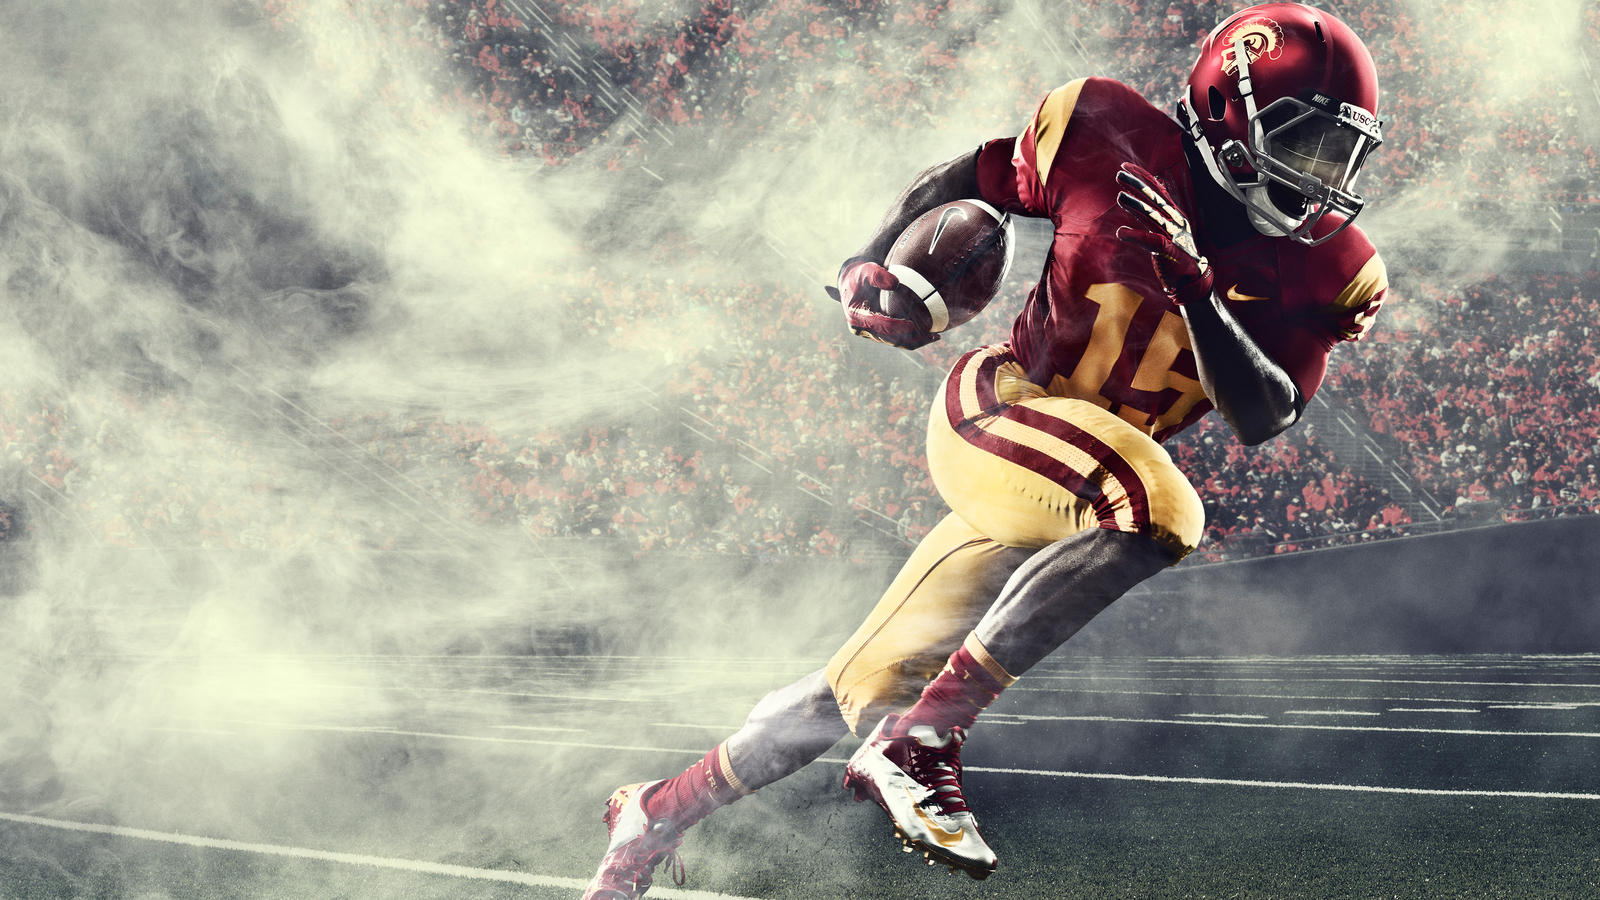 Seminoles Trojans Kick Off College Football Season In New Nike Cleats And Gloves